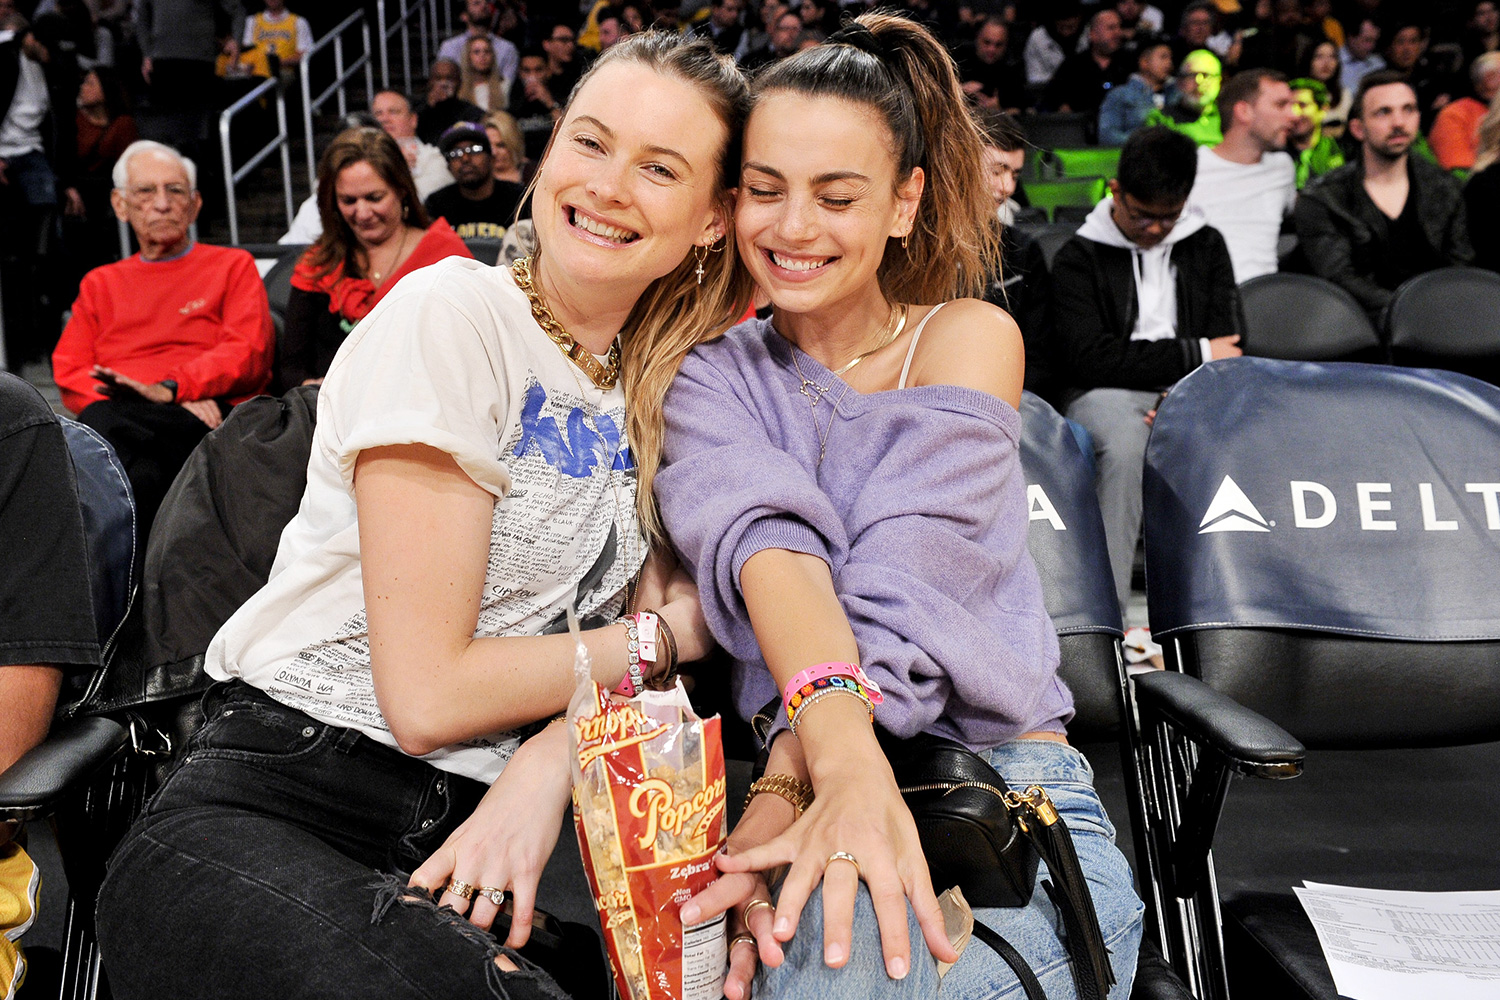 Behati Prinsloo (L) and Whitney Hartley Wagner attend a basketball game between the Los Angeles Lakers and the Denver Nuggets at Staples Center on December 22, 2019 in Los Angeles, California